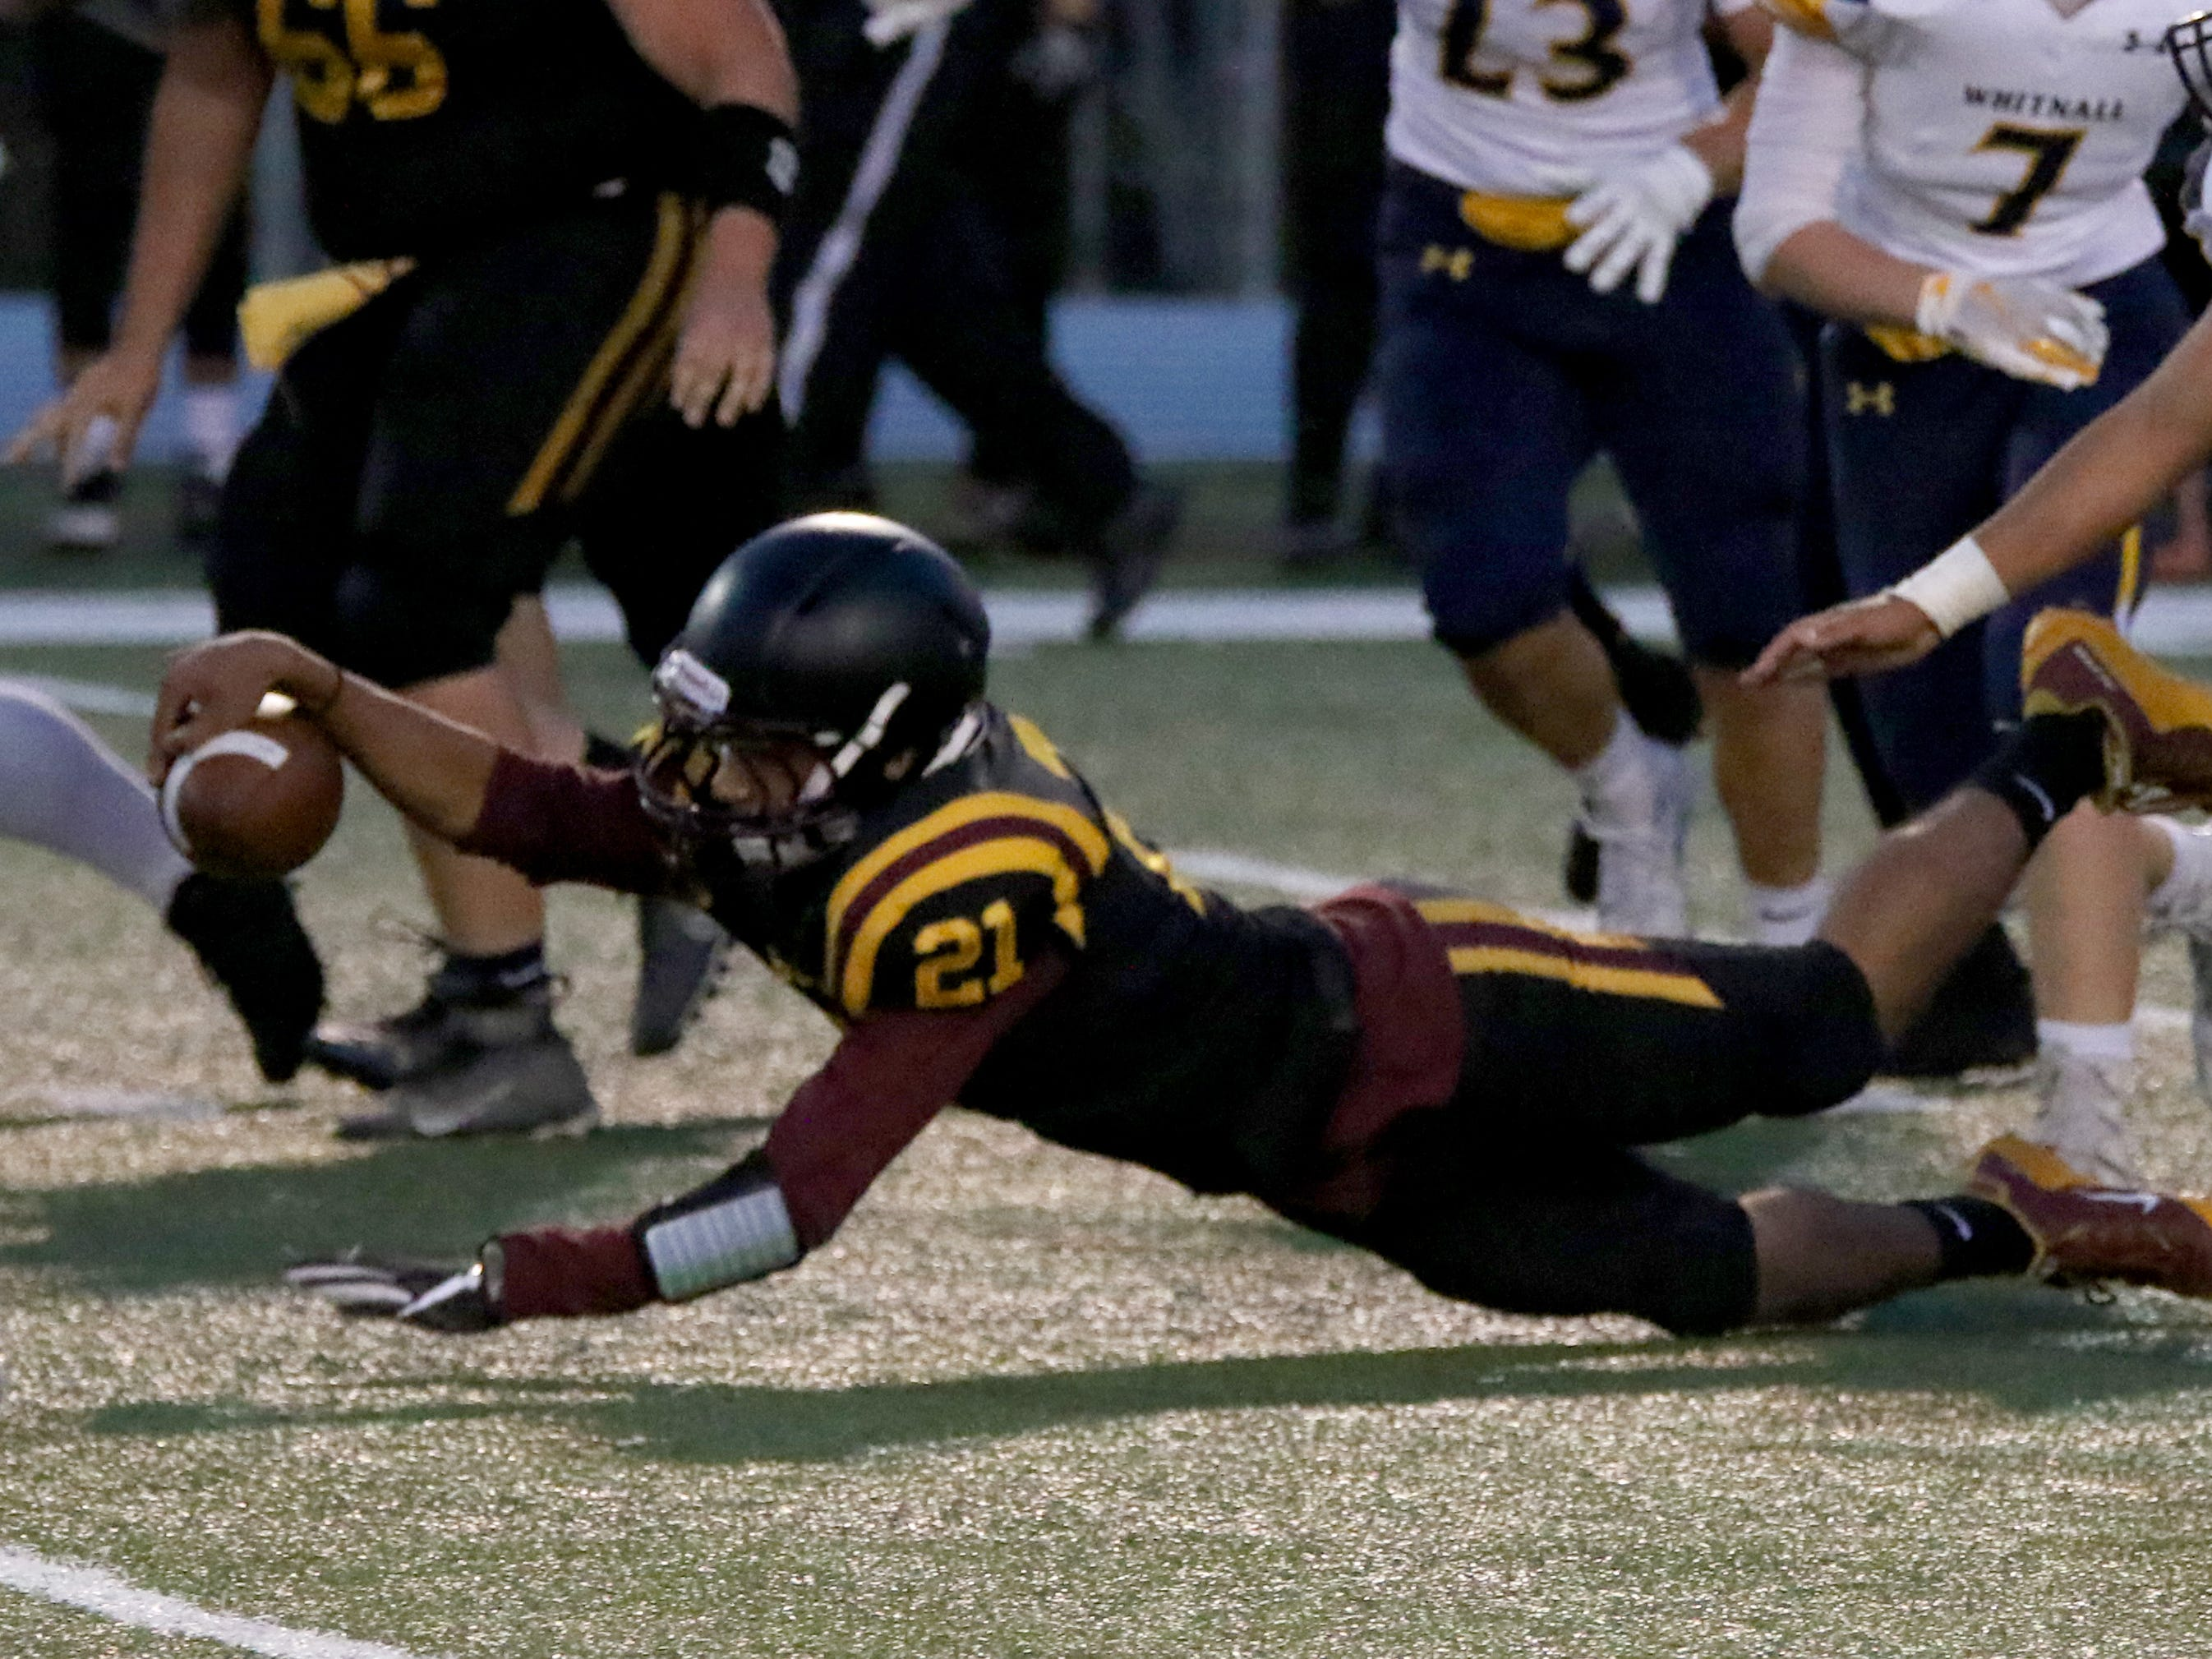 West Allis Central's Darius Grice stretches for extra yards against Whitnall at Central on Sept. 6.